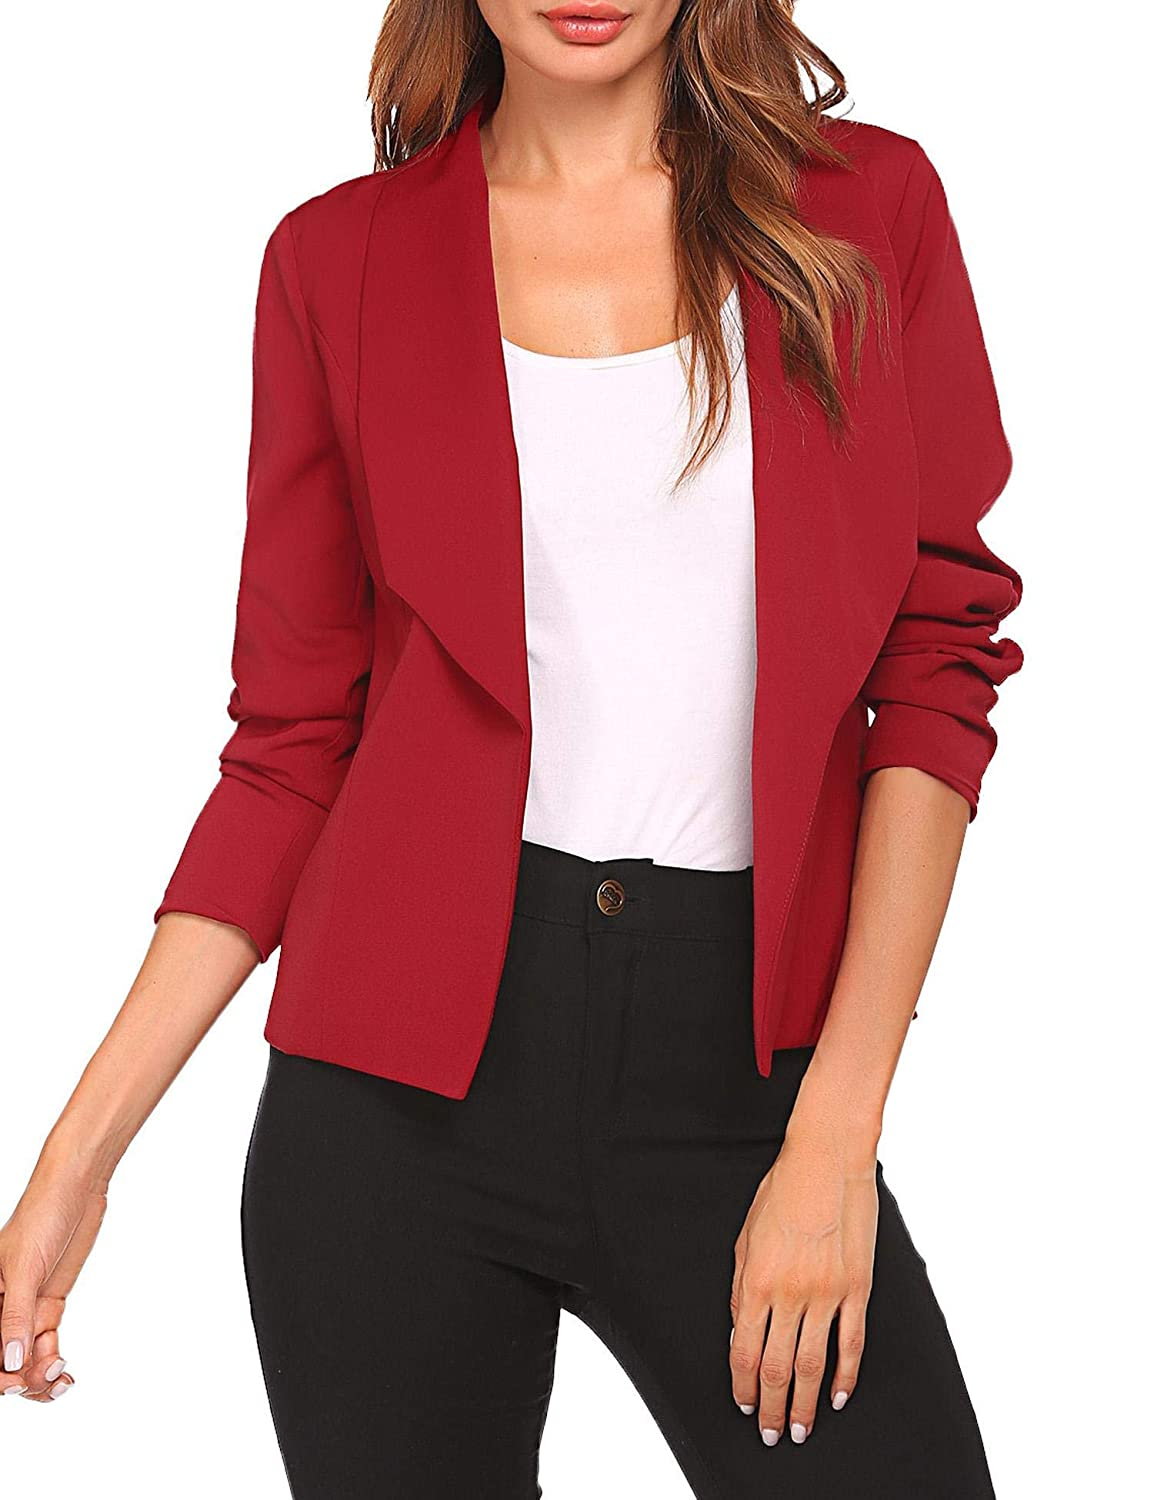 Women Solid Open Front Blazer Cardigans Long Sleeve Pockets Lapel Suit Jacket